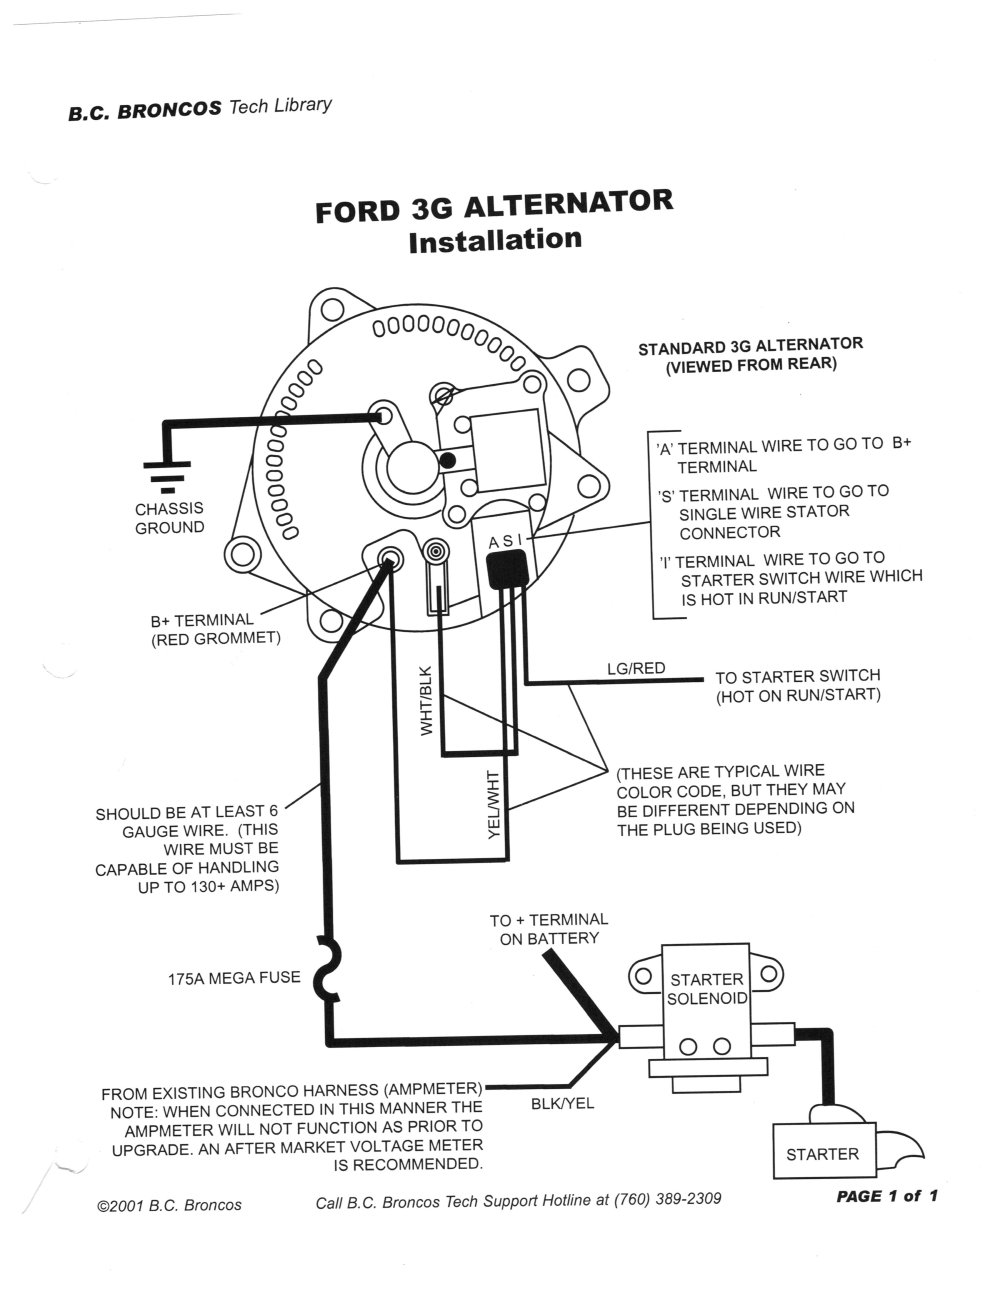 medium resolution of 1970 ford bronco alternator wiring data diagram schematic 98 ford explorer alternator wiring 1970 ford bronco